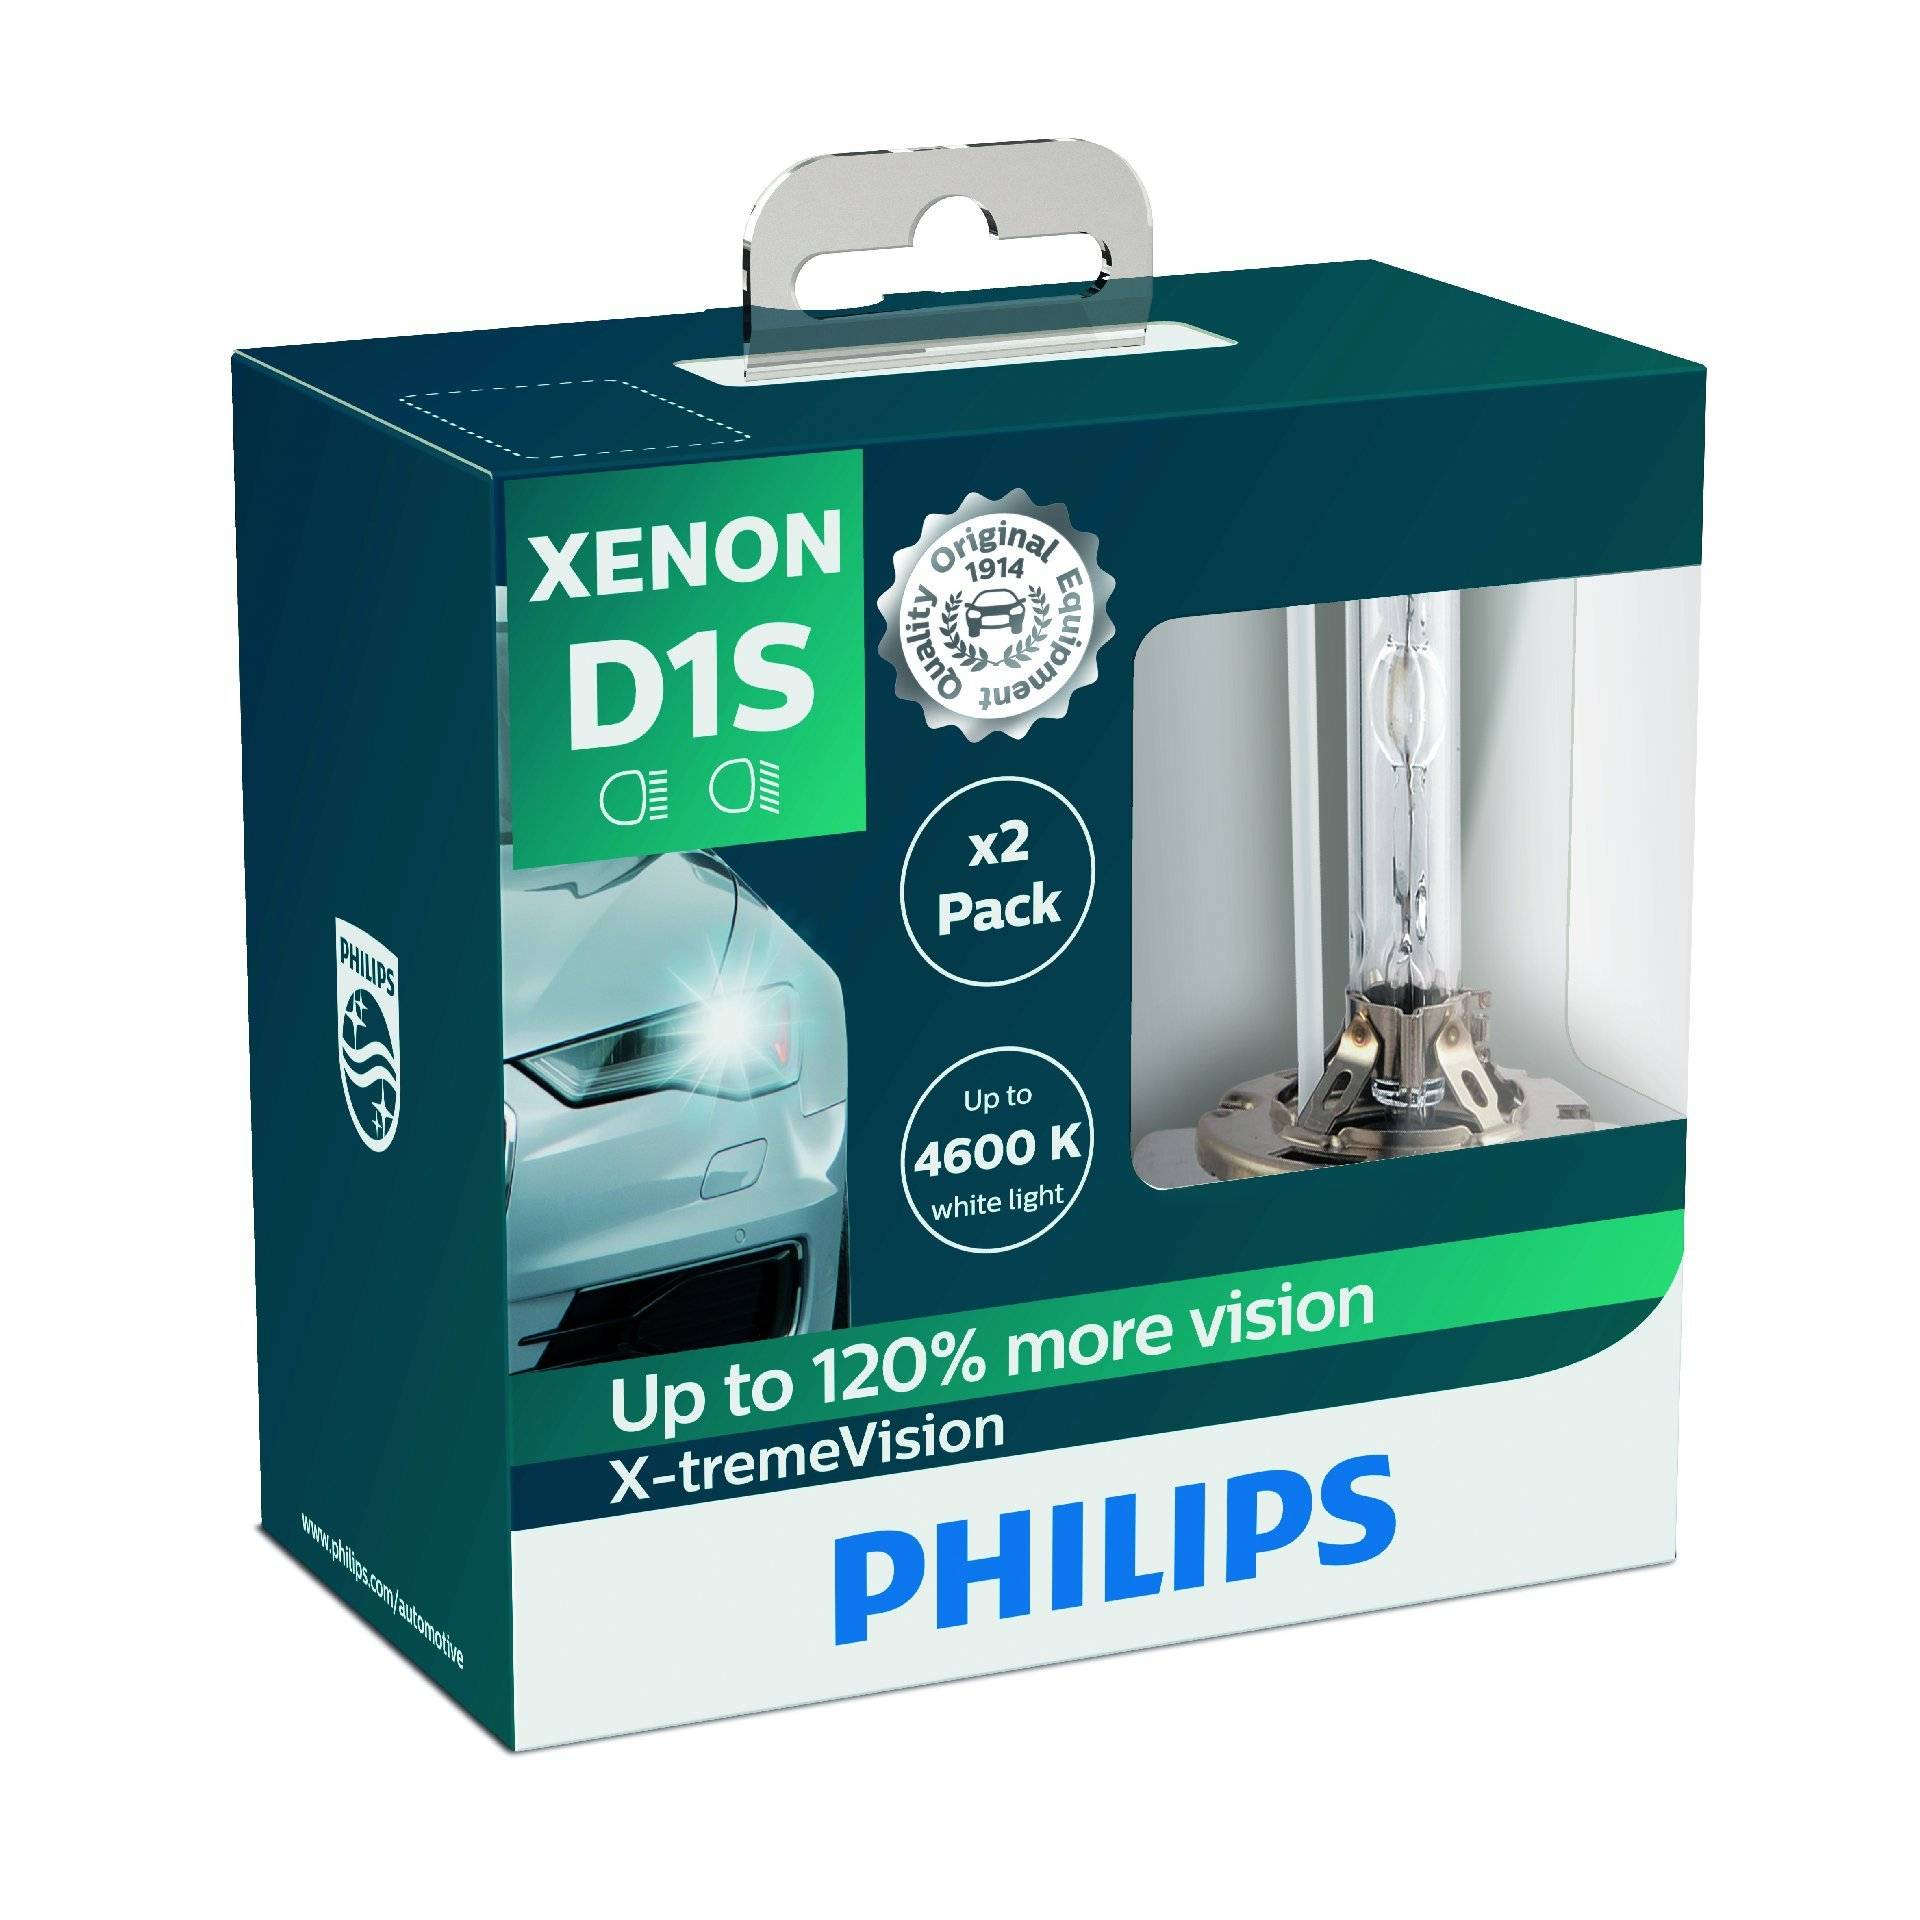 Philips 85415XVS2 Xenon-Scheinwerferlampe X-tremeVision D1S, Doppelset von Philips automotive lighting